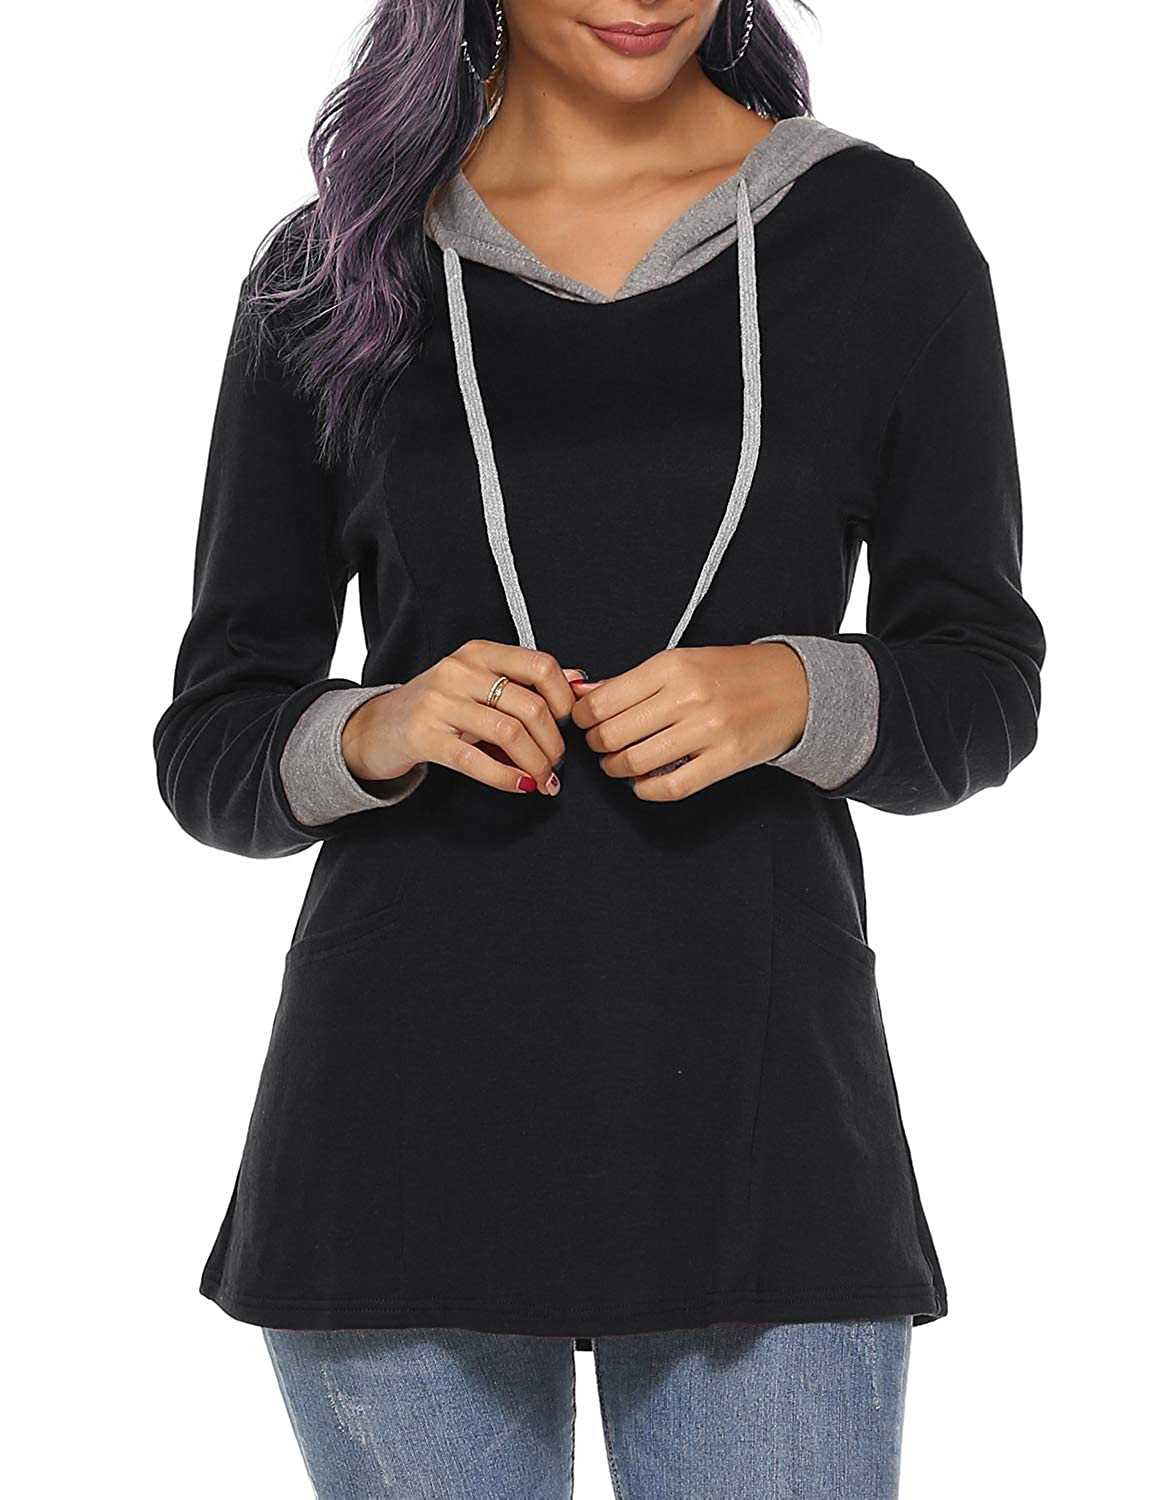 Sweetnight Womens Long Sleeve Color Block Pullover Hoodies Pocket Sweatshirt Tunic Tops